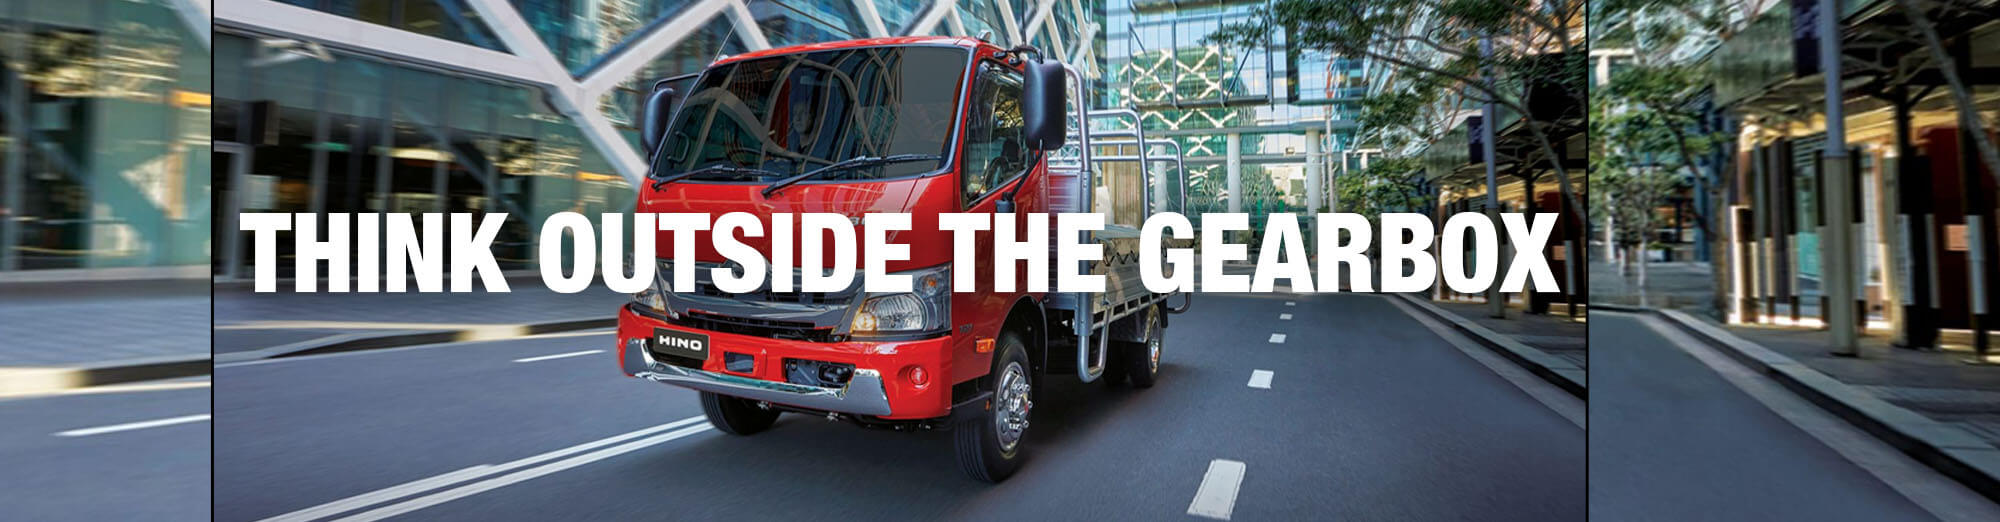 Think outside the gearbox - the future of trucking is automatic